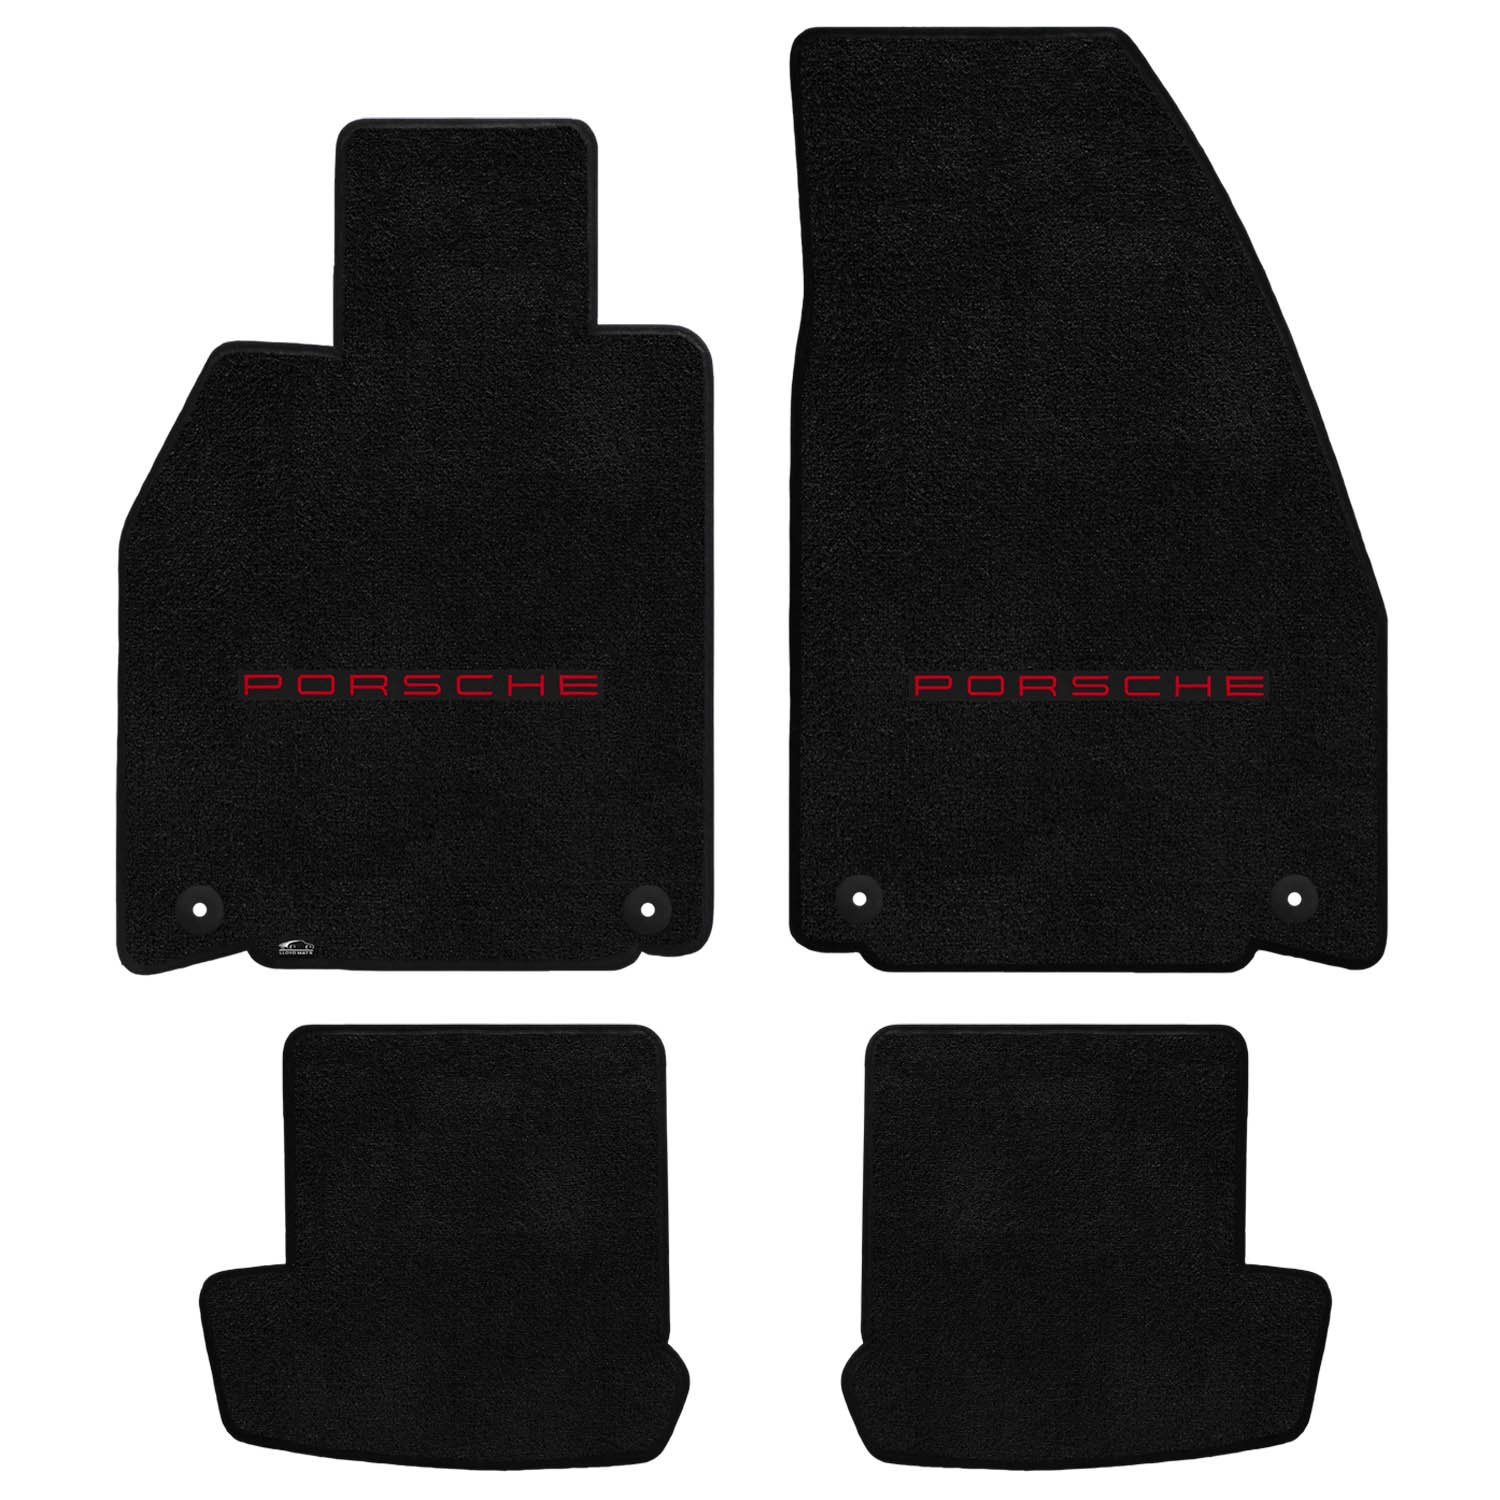 embroidery lloyd chevrolet black front camino el velourtex silver with for car floor mats lloyds